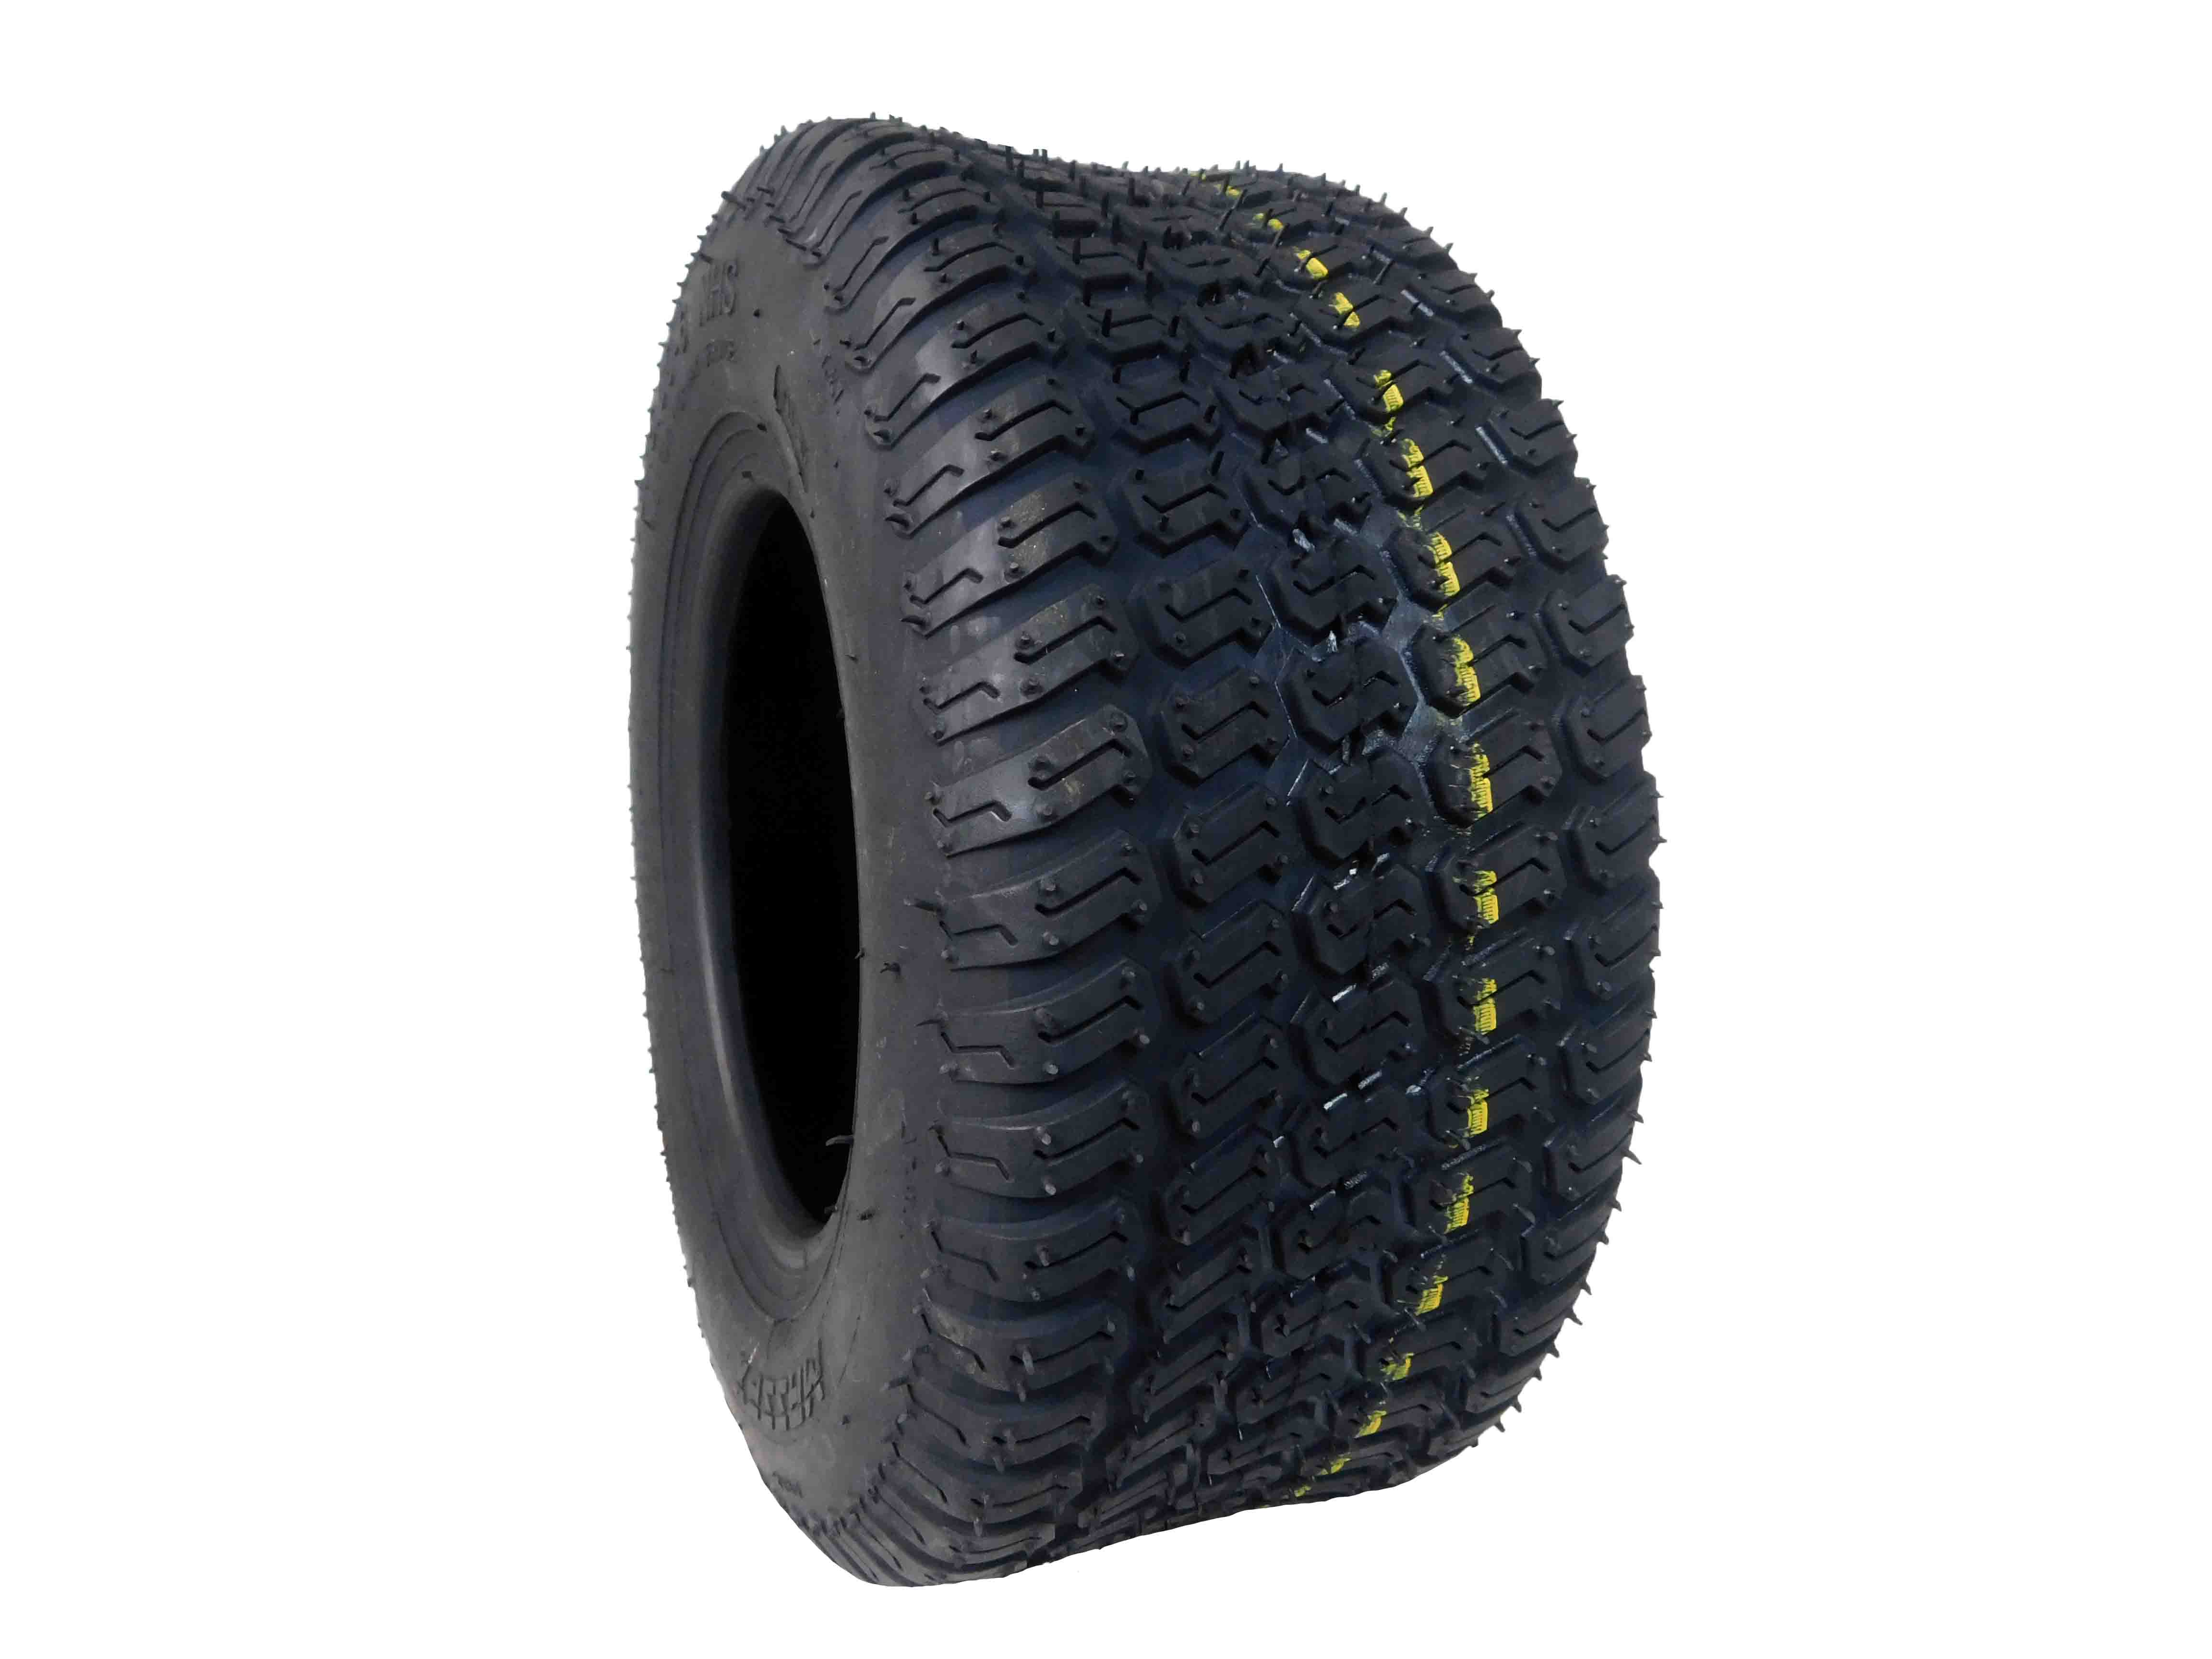 MASSFX-13x5-6-Lawn-Mower-Tires-4ply-image-1